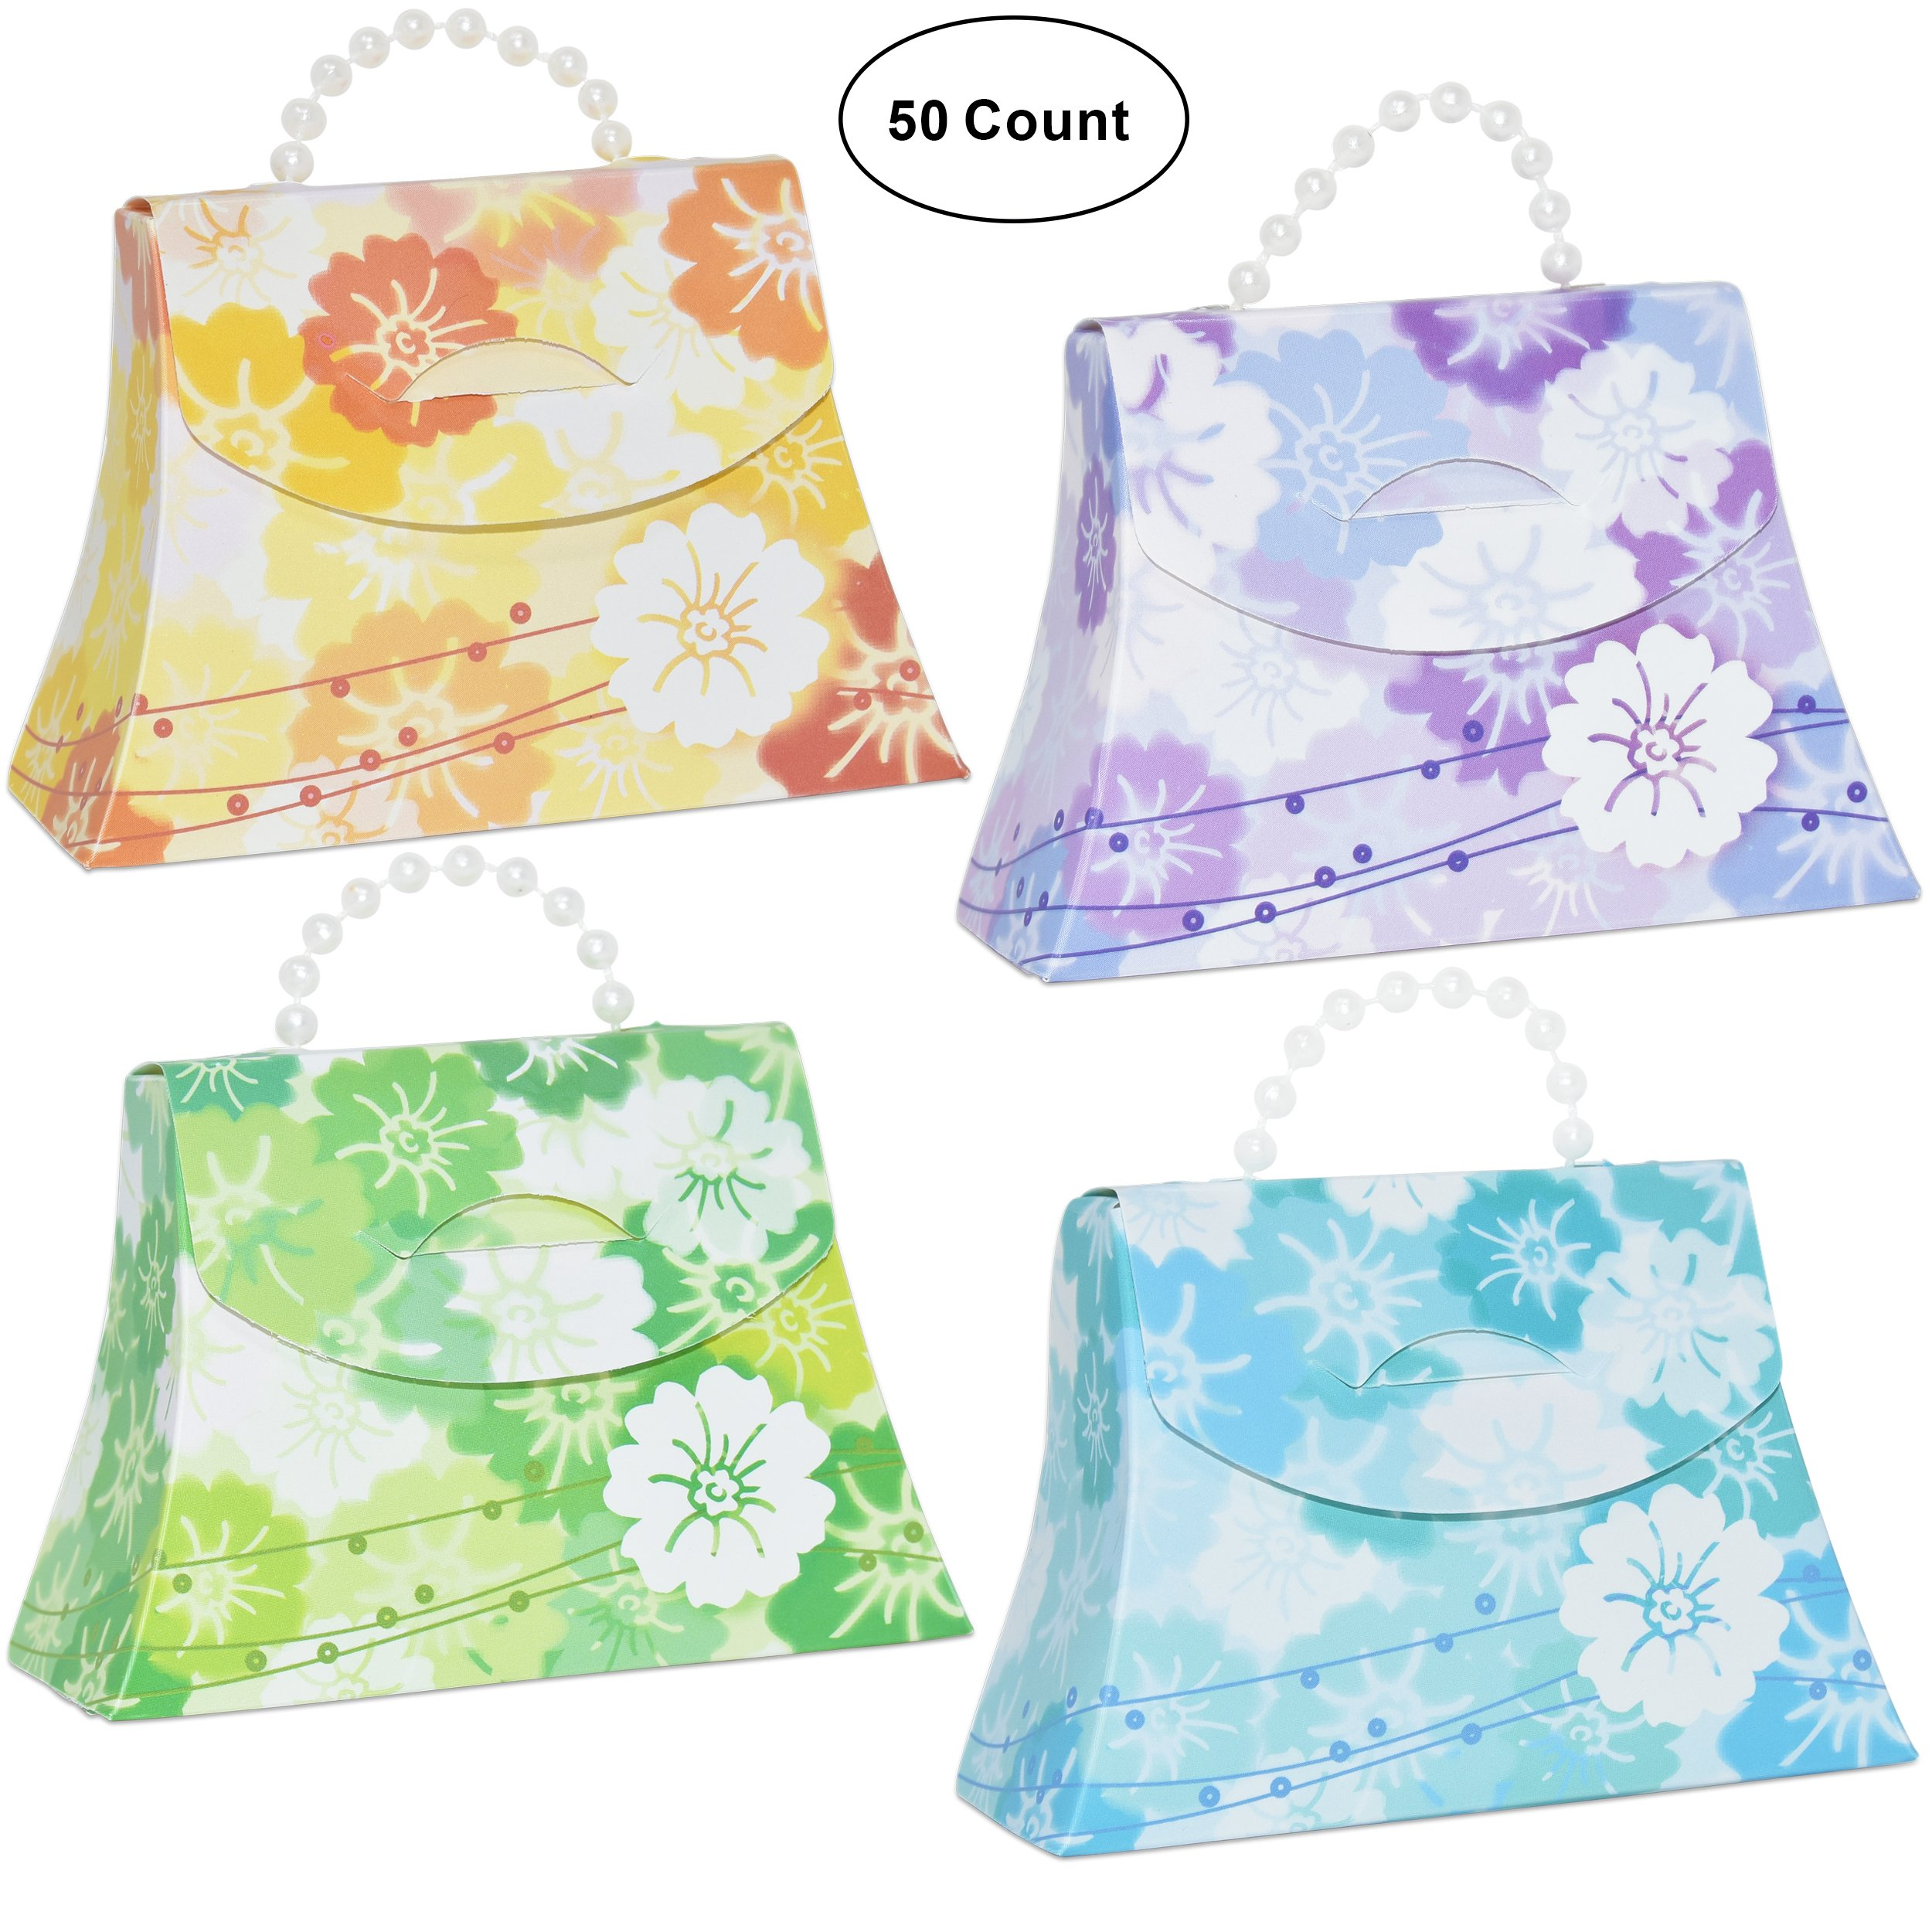 50 Flower Favor Bag Purse Boxes Craft Kit with Pearl Bead Handle Floral Design Guest Candy Goodie Treat Bags Party Supplies Decorations for Wedding Reception Birthday Celebration Baby & Bridal Shower by Gift Boutique